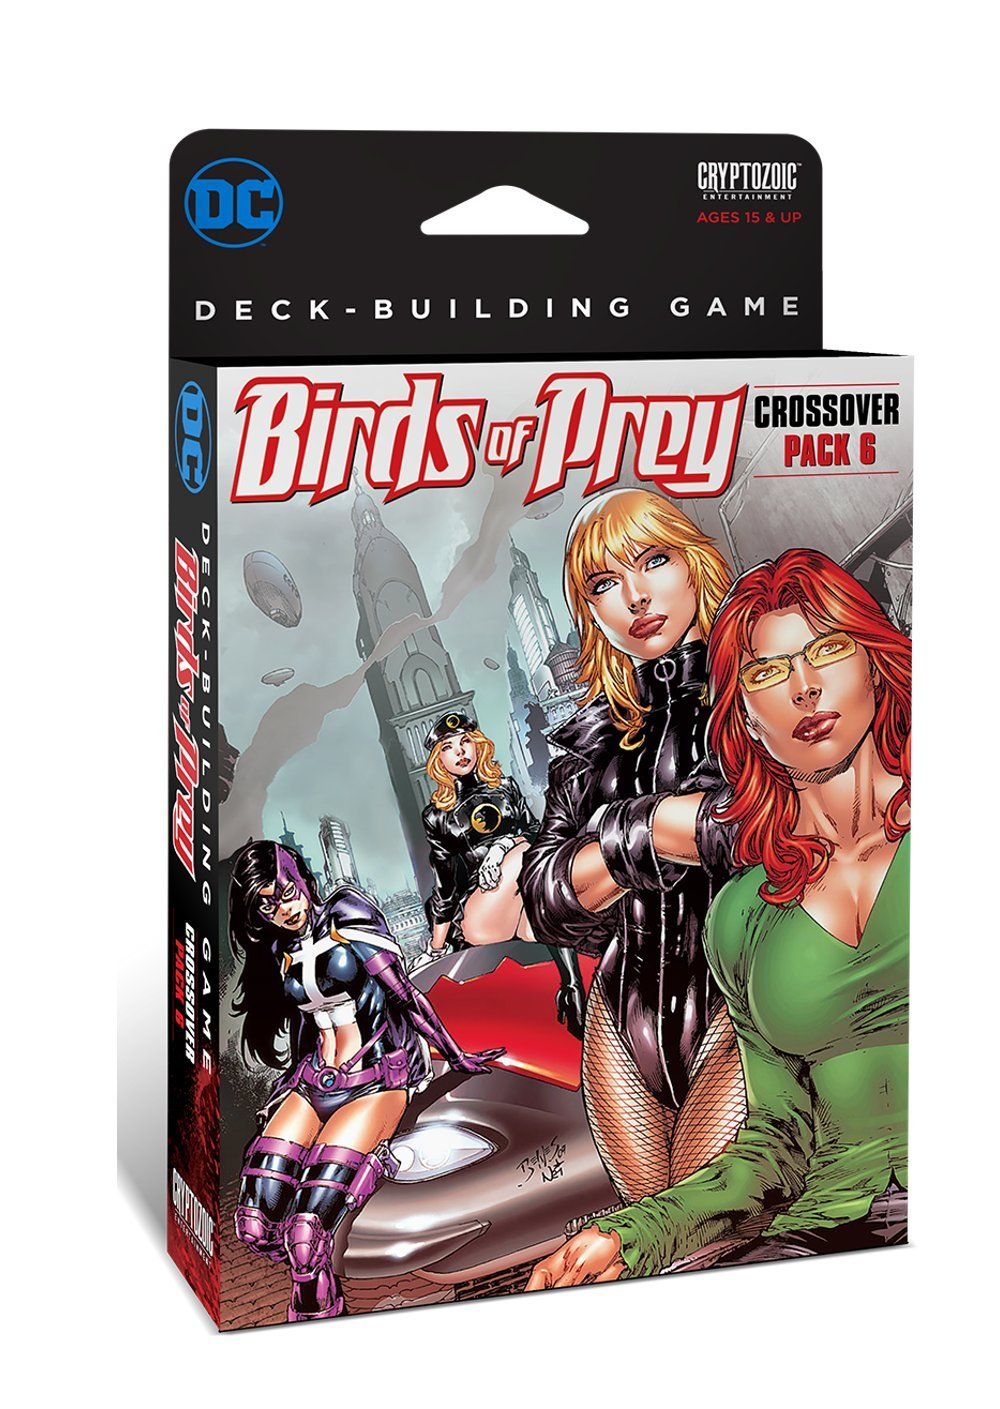 Cryptozoic Entertainment DC Deck-Building Game Crossover Pack 6: Birds of Prey